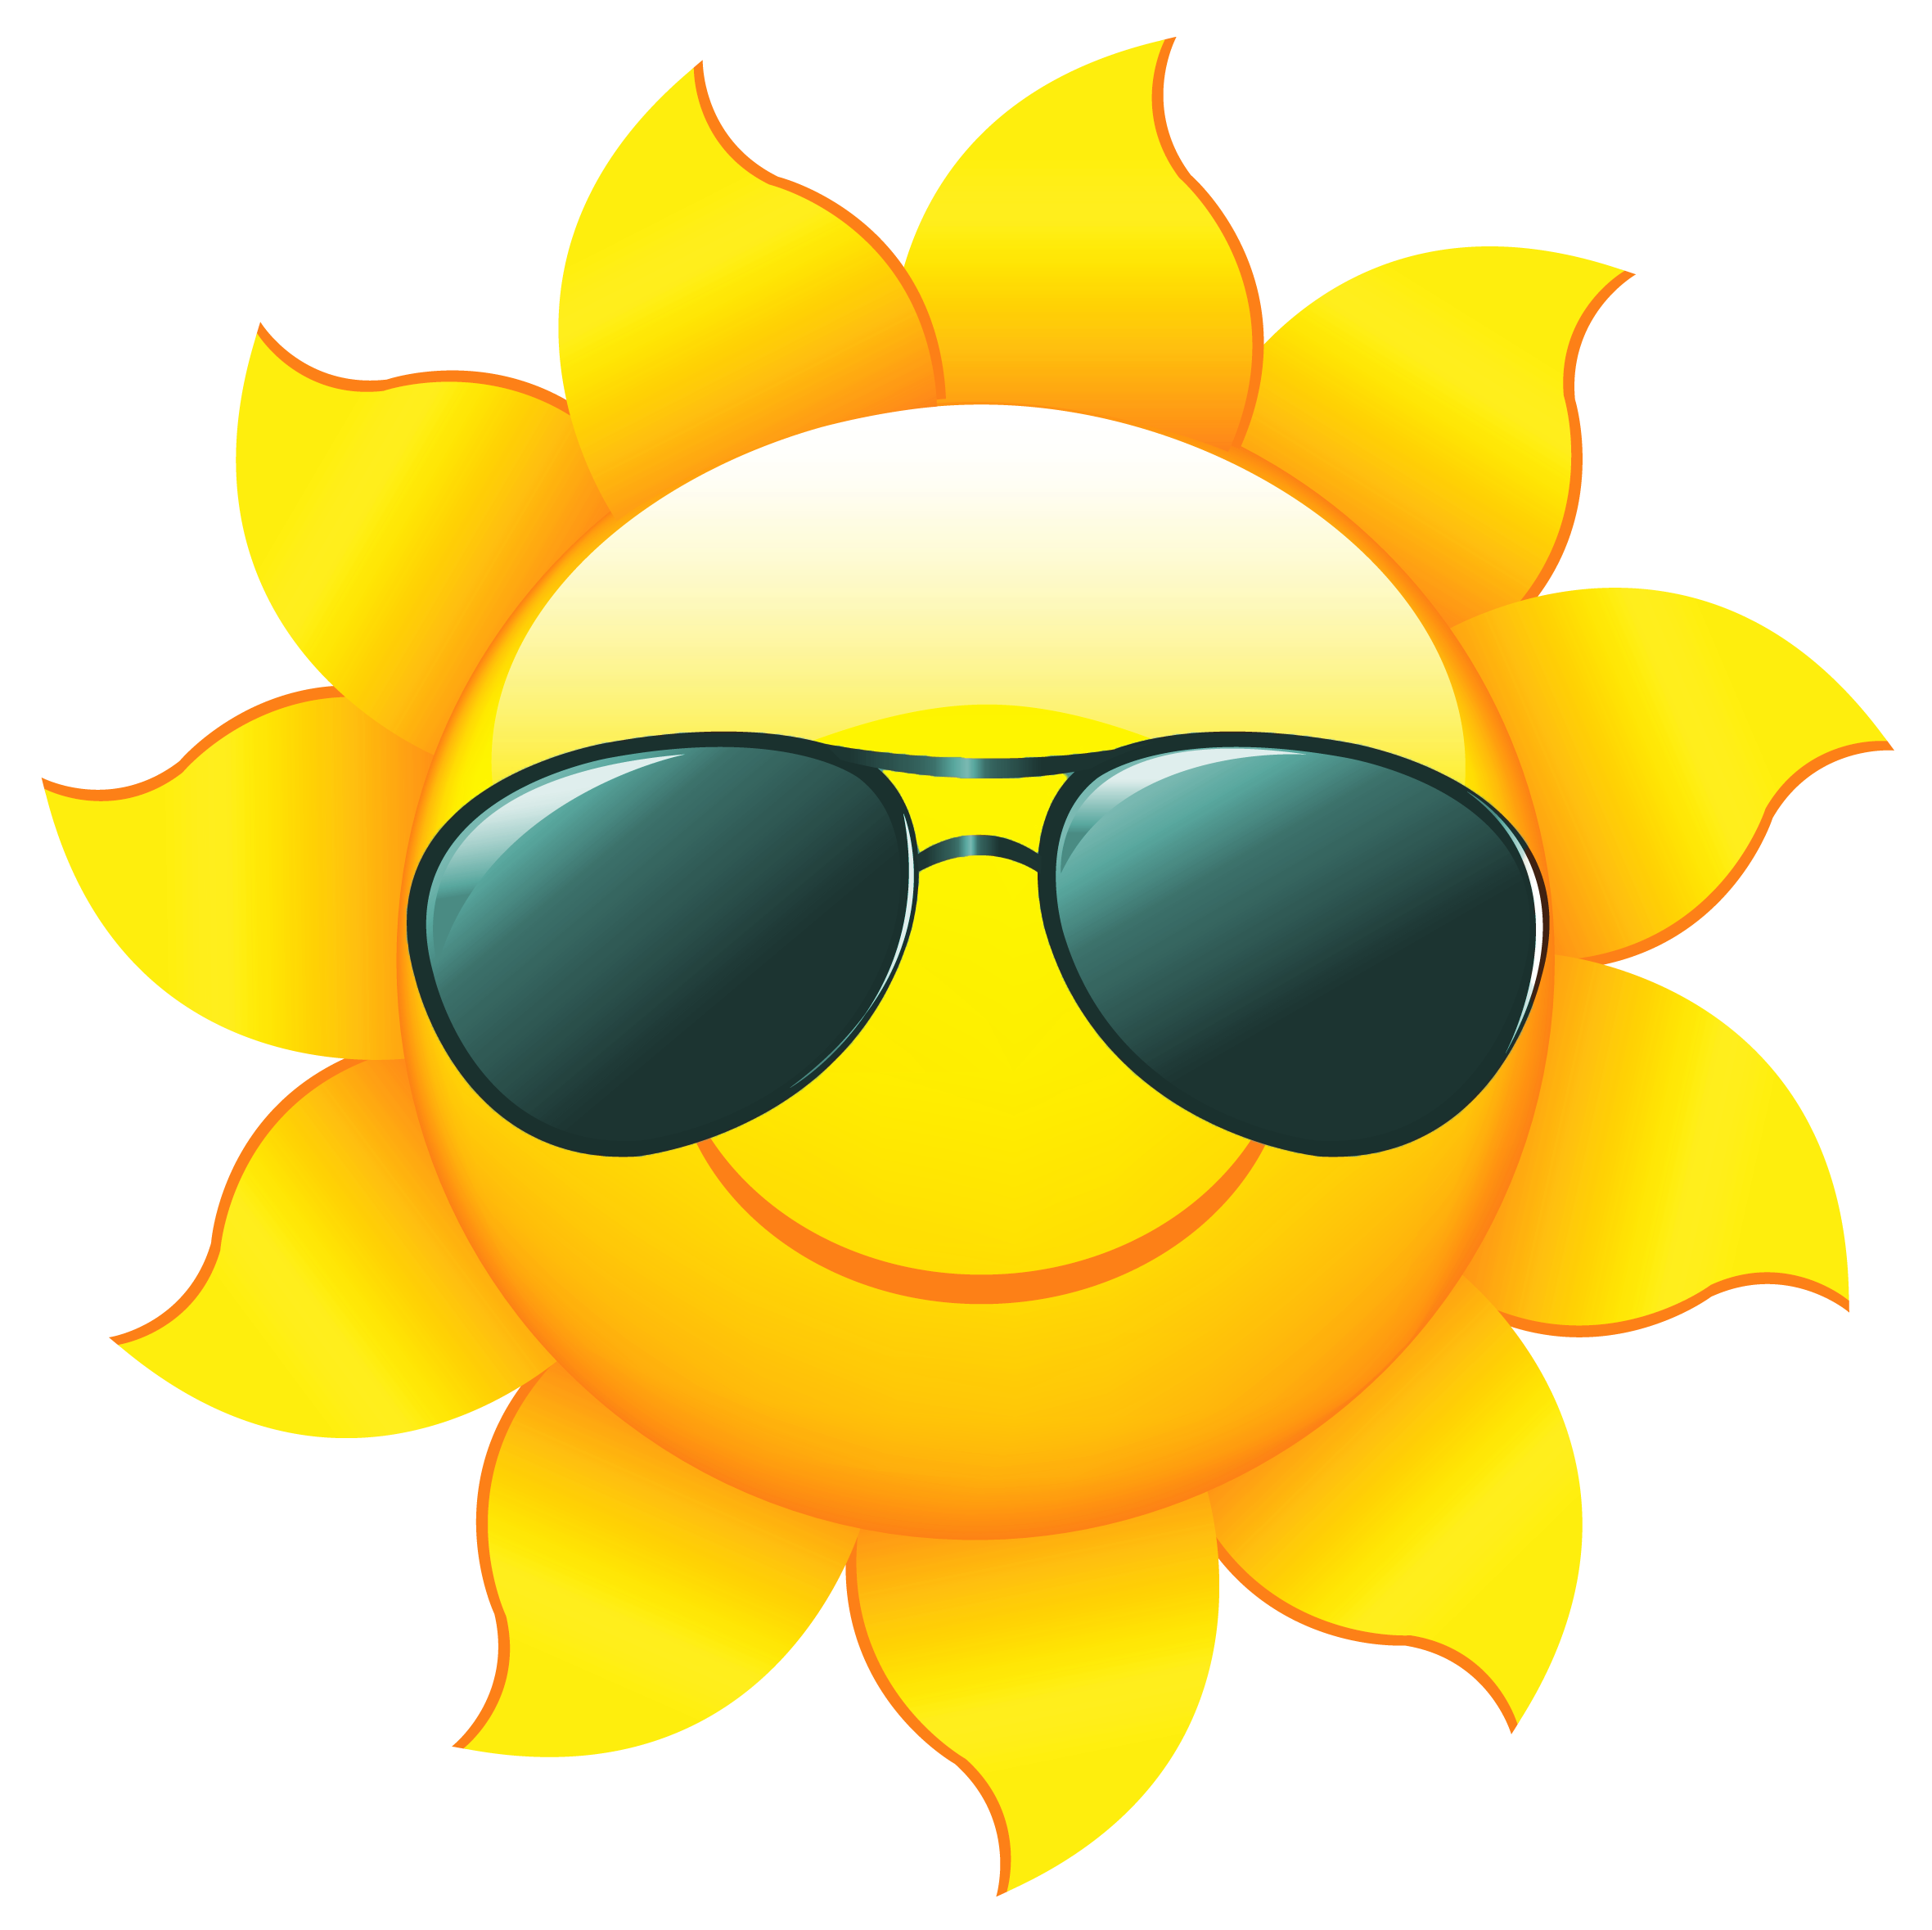 Sun safety clipart graphic black and white Community Events Calendar 6.30-7.6.2018 - Town of Bedford graphic black and white